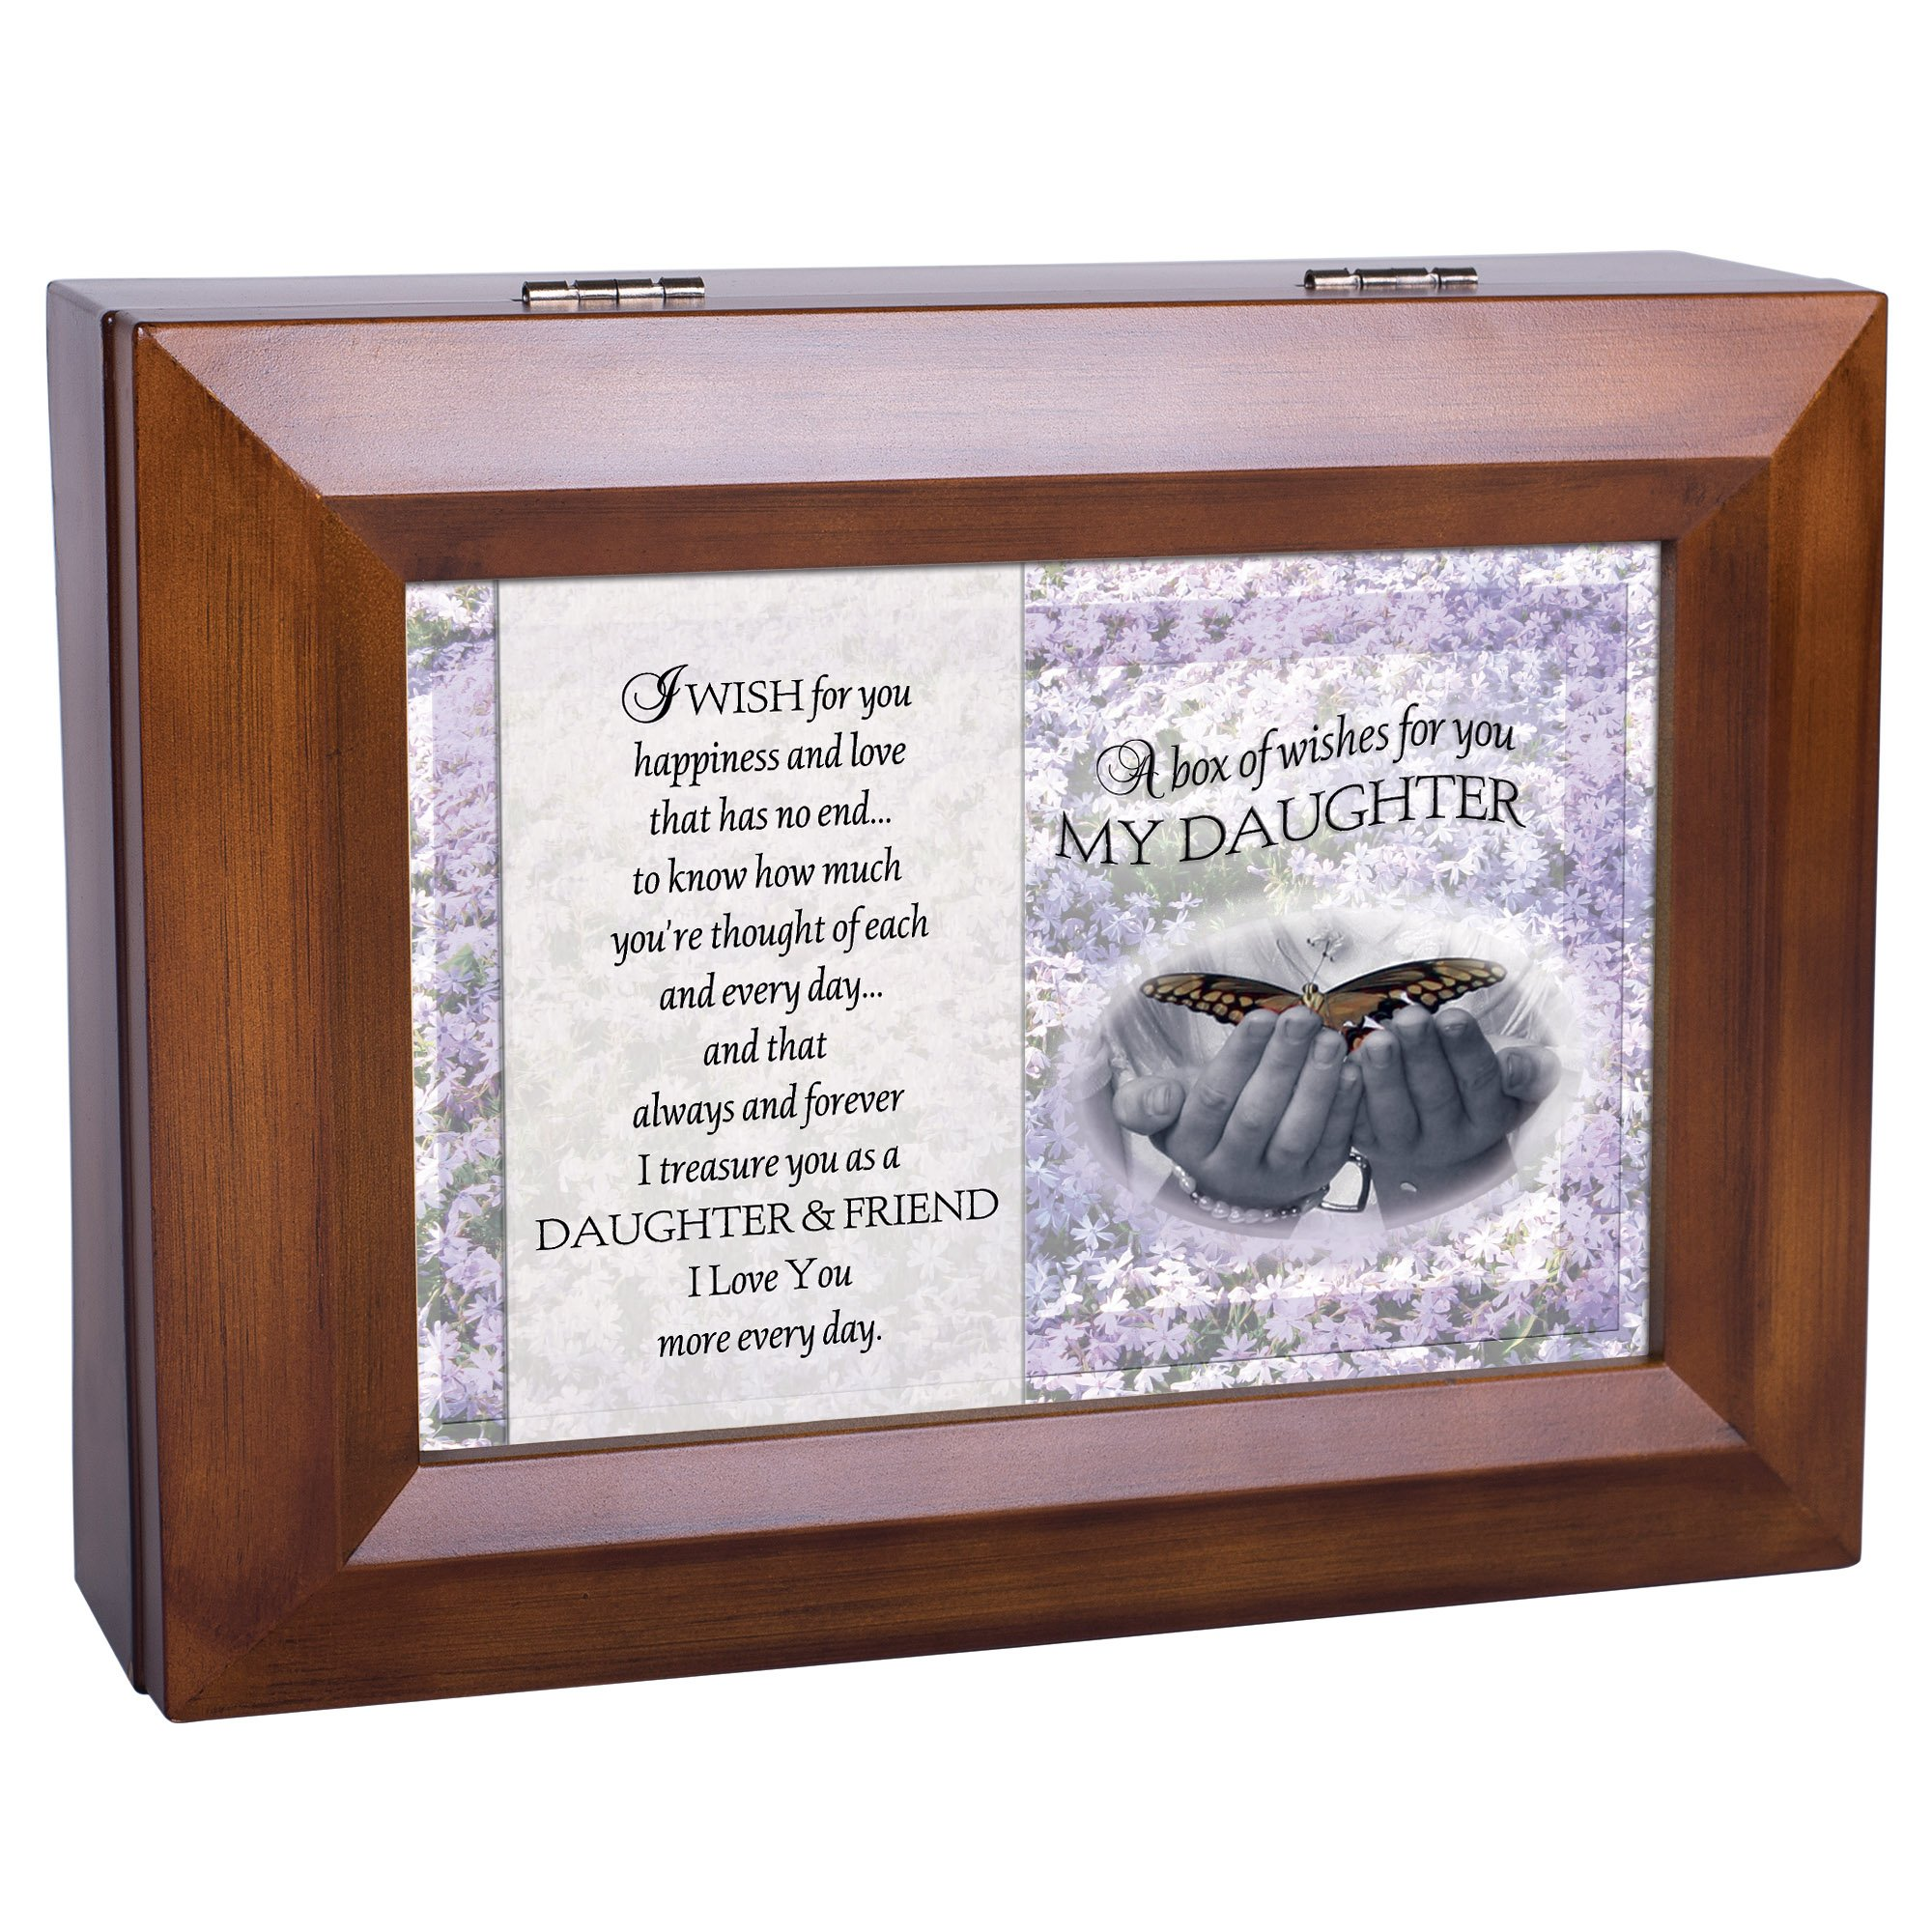 Cottage Garden My Daughter Dark Wood Finish Jewelry Music Box - Plays Tune You Are My Sunshine by Cottage Garden (Image #4)